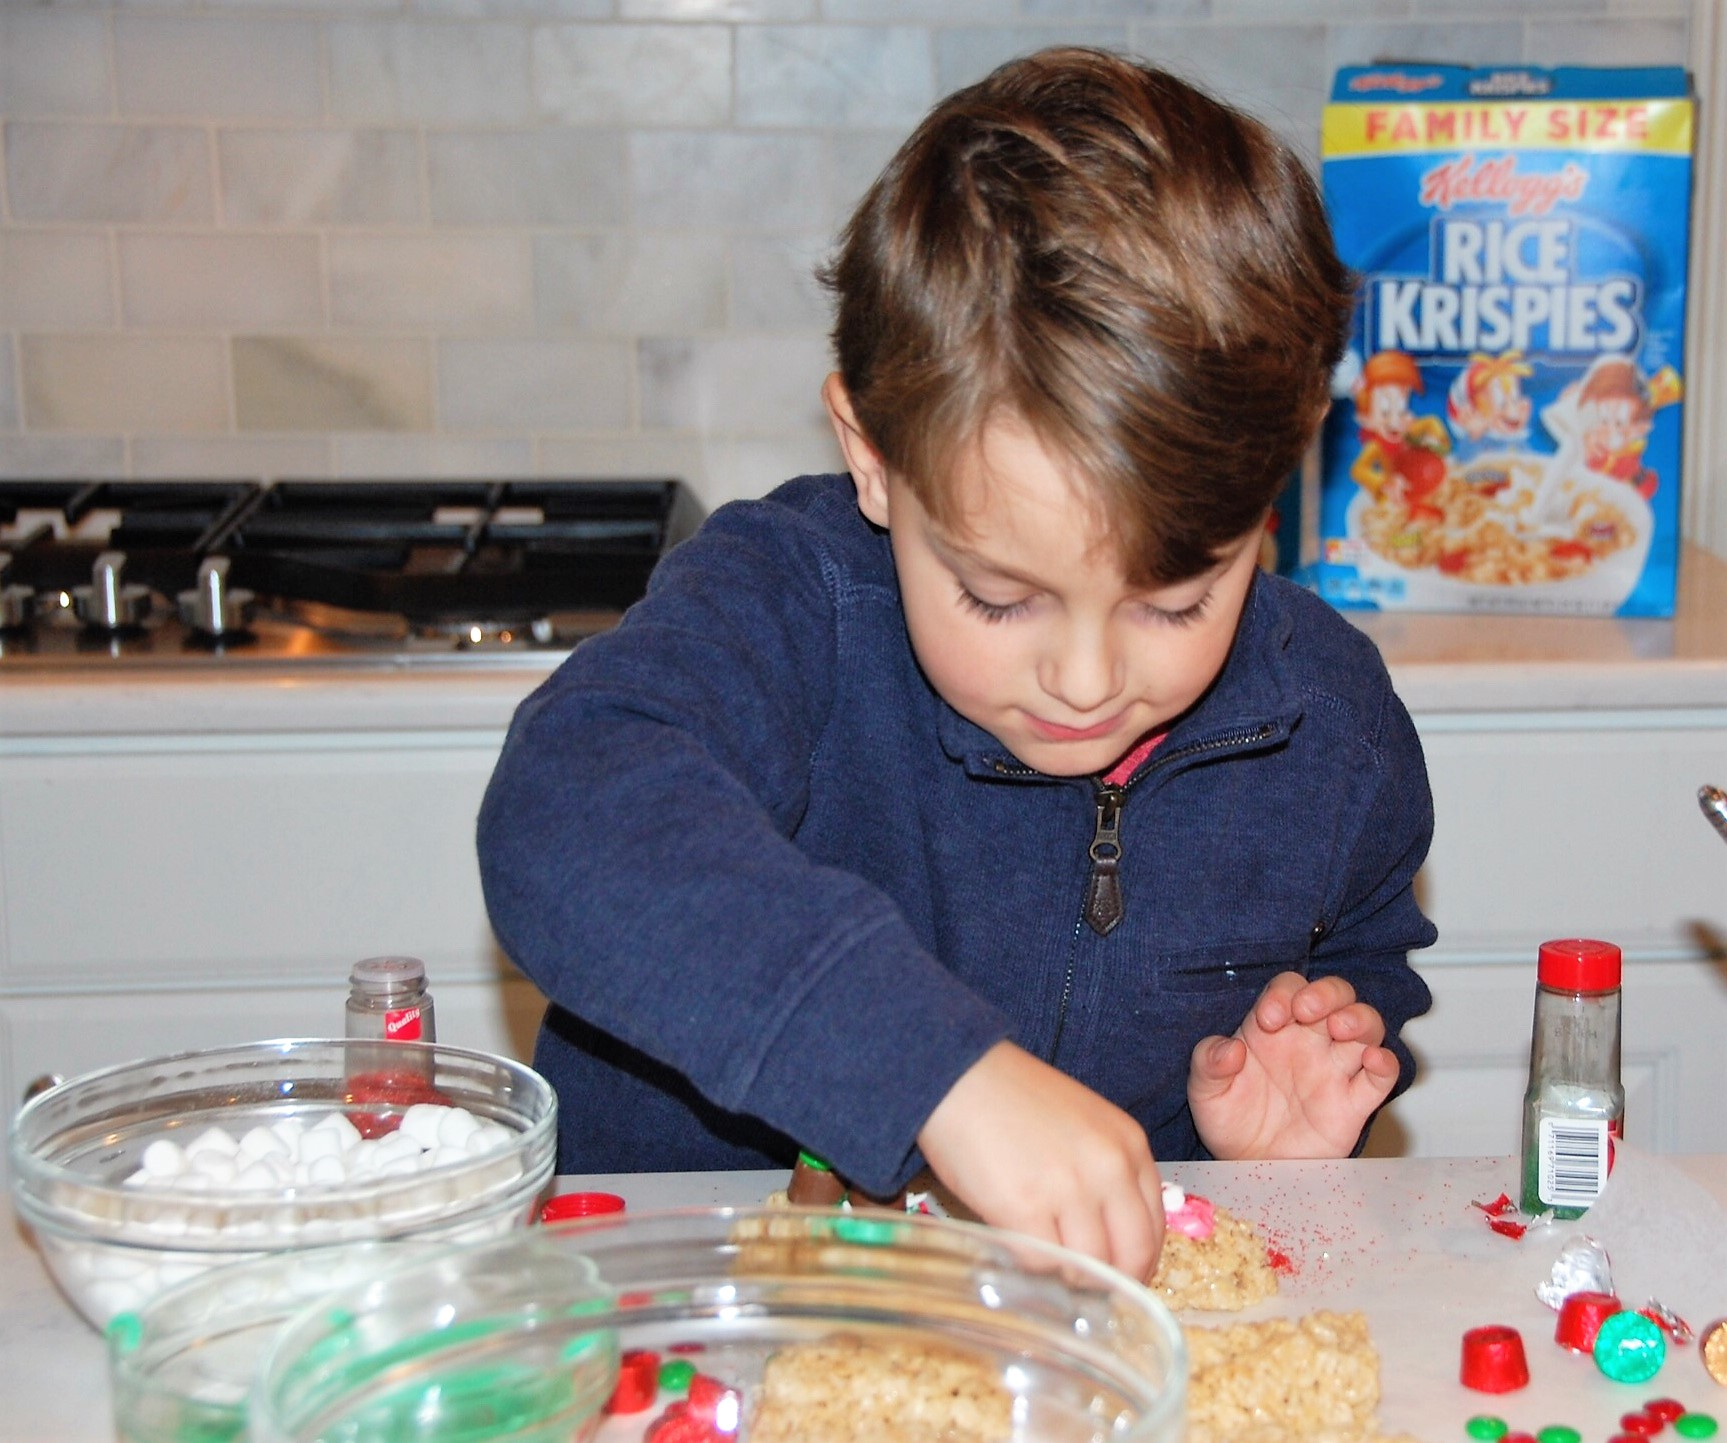 Knox Bishop making Rice Krispies Treats